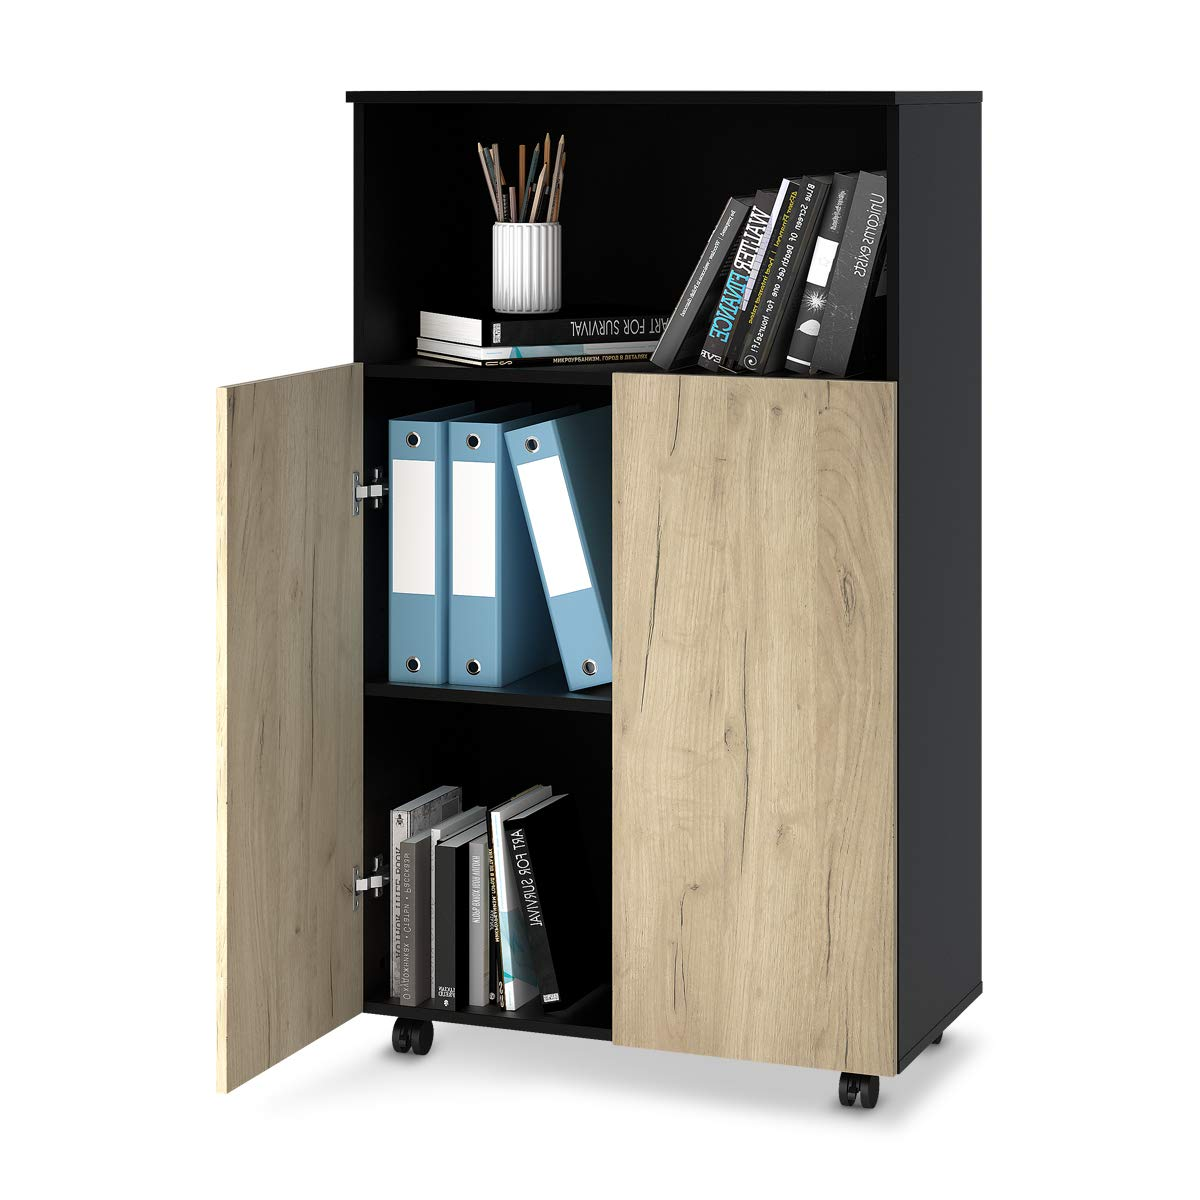 DEVAISE Storage Cabinet with 2 Doors, Mobile File Cabinet with Adjustable Shelf